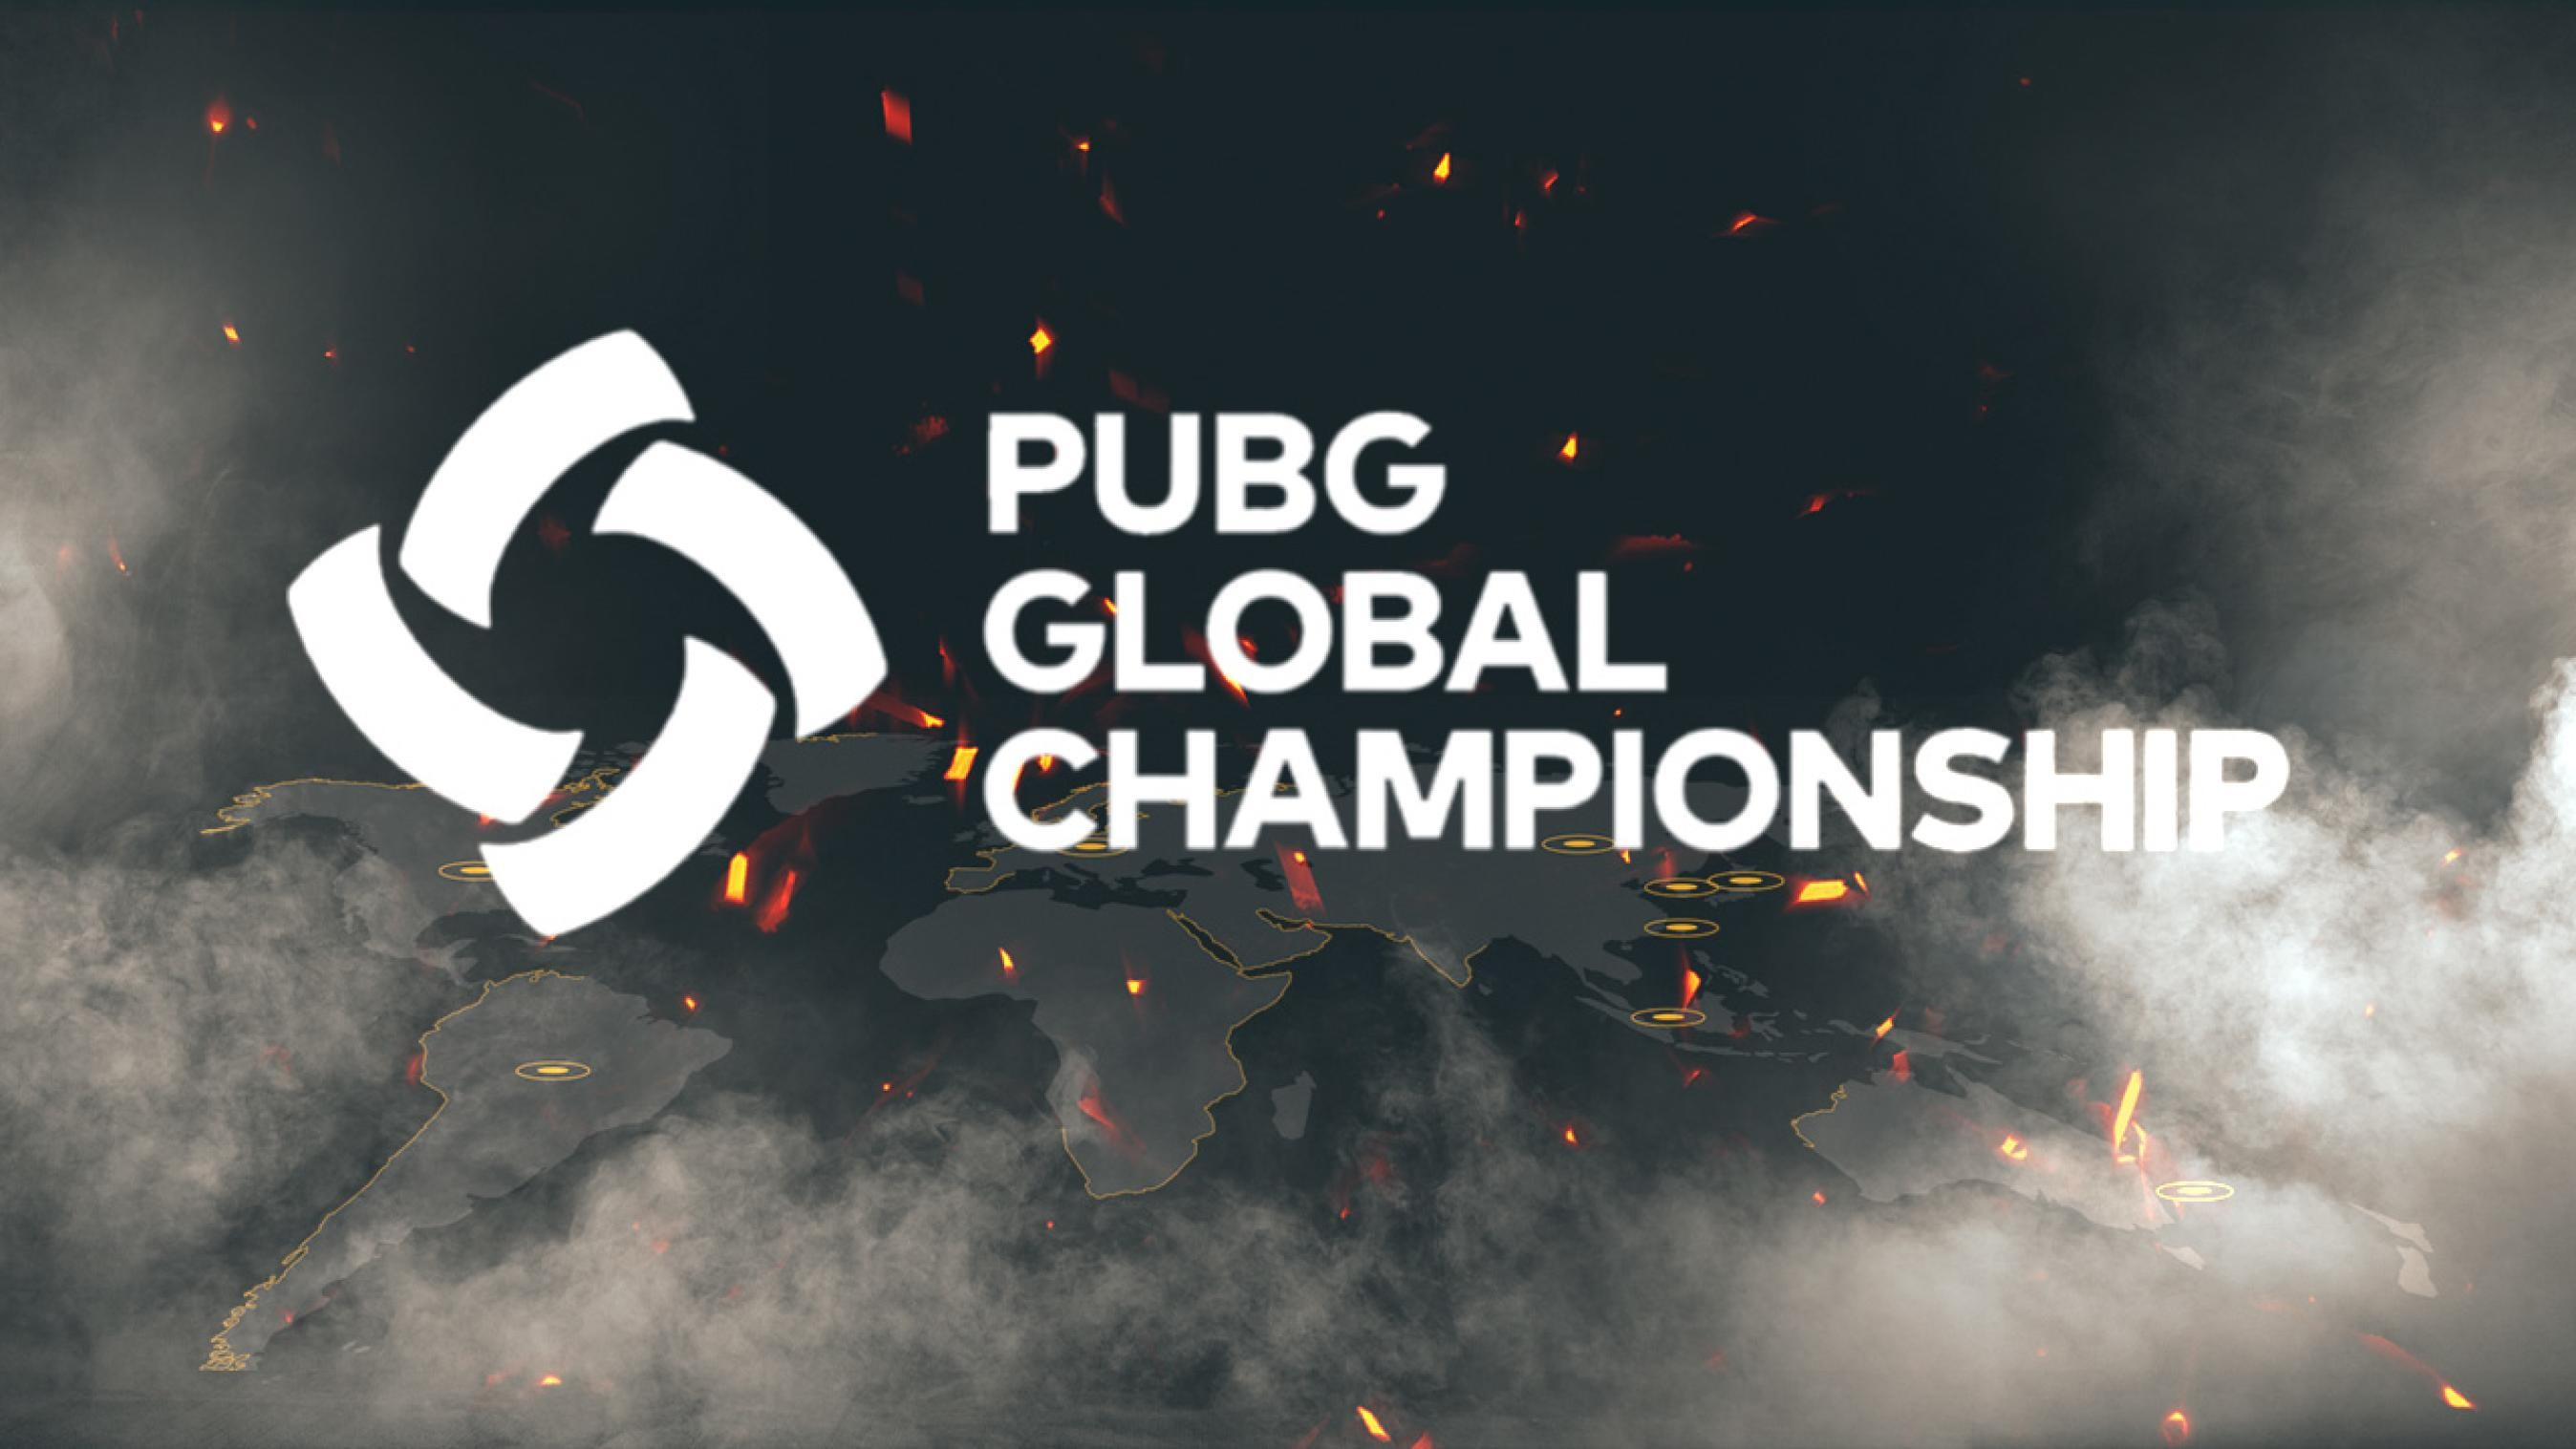 PUBG Global Championship  (PCMag)